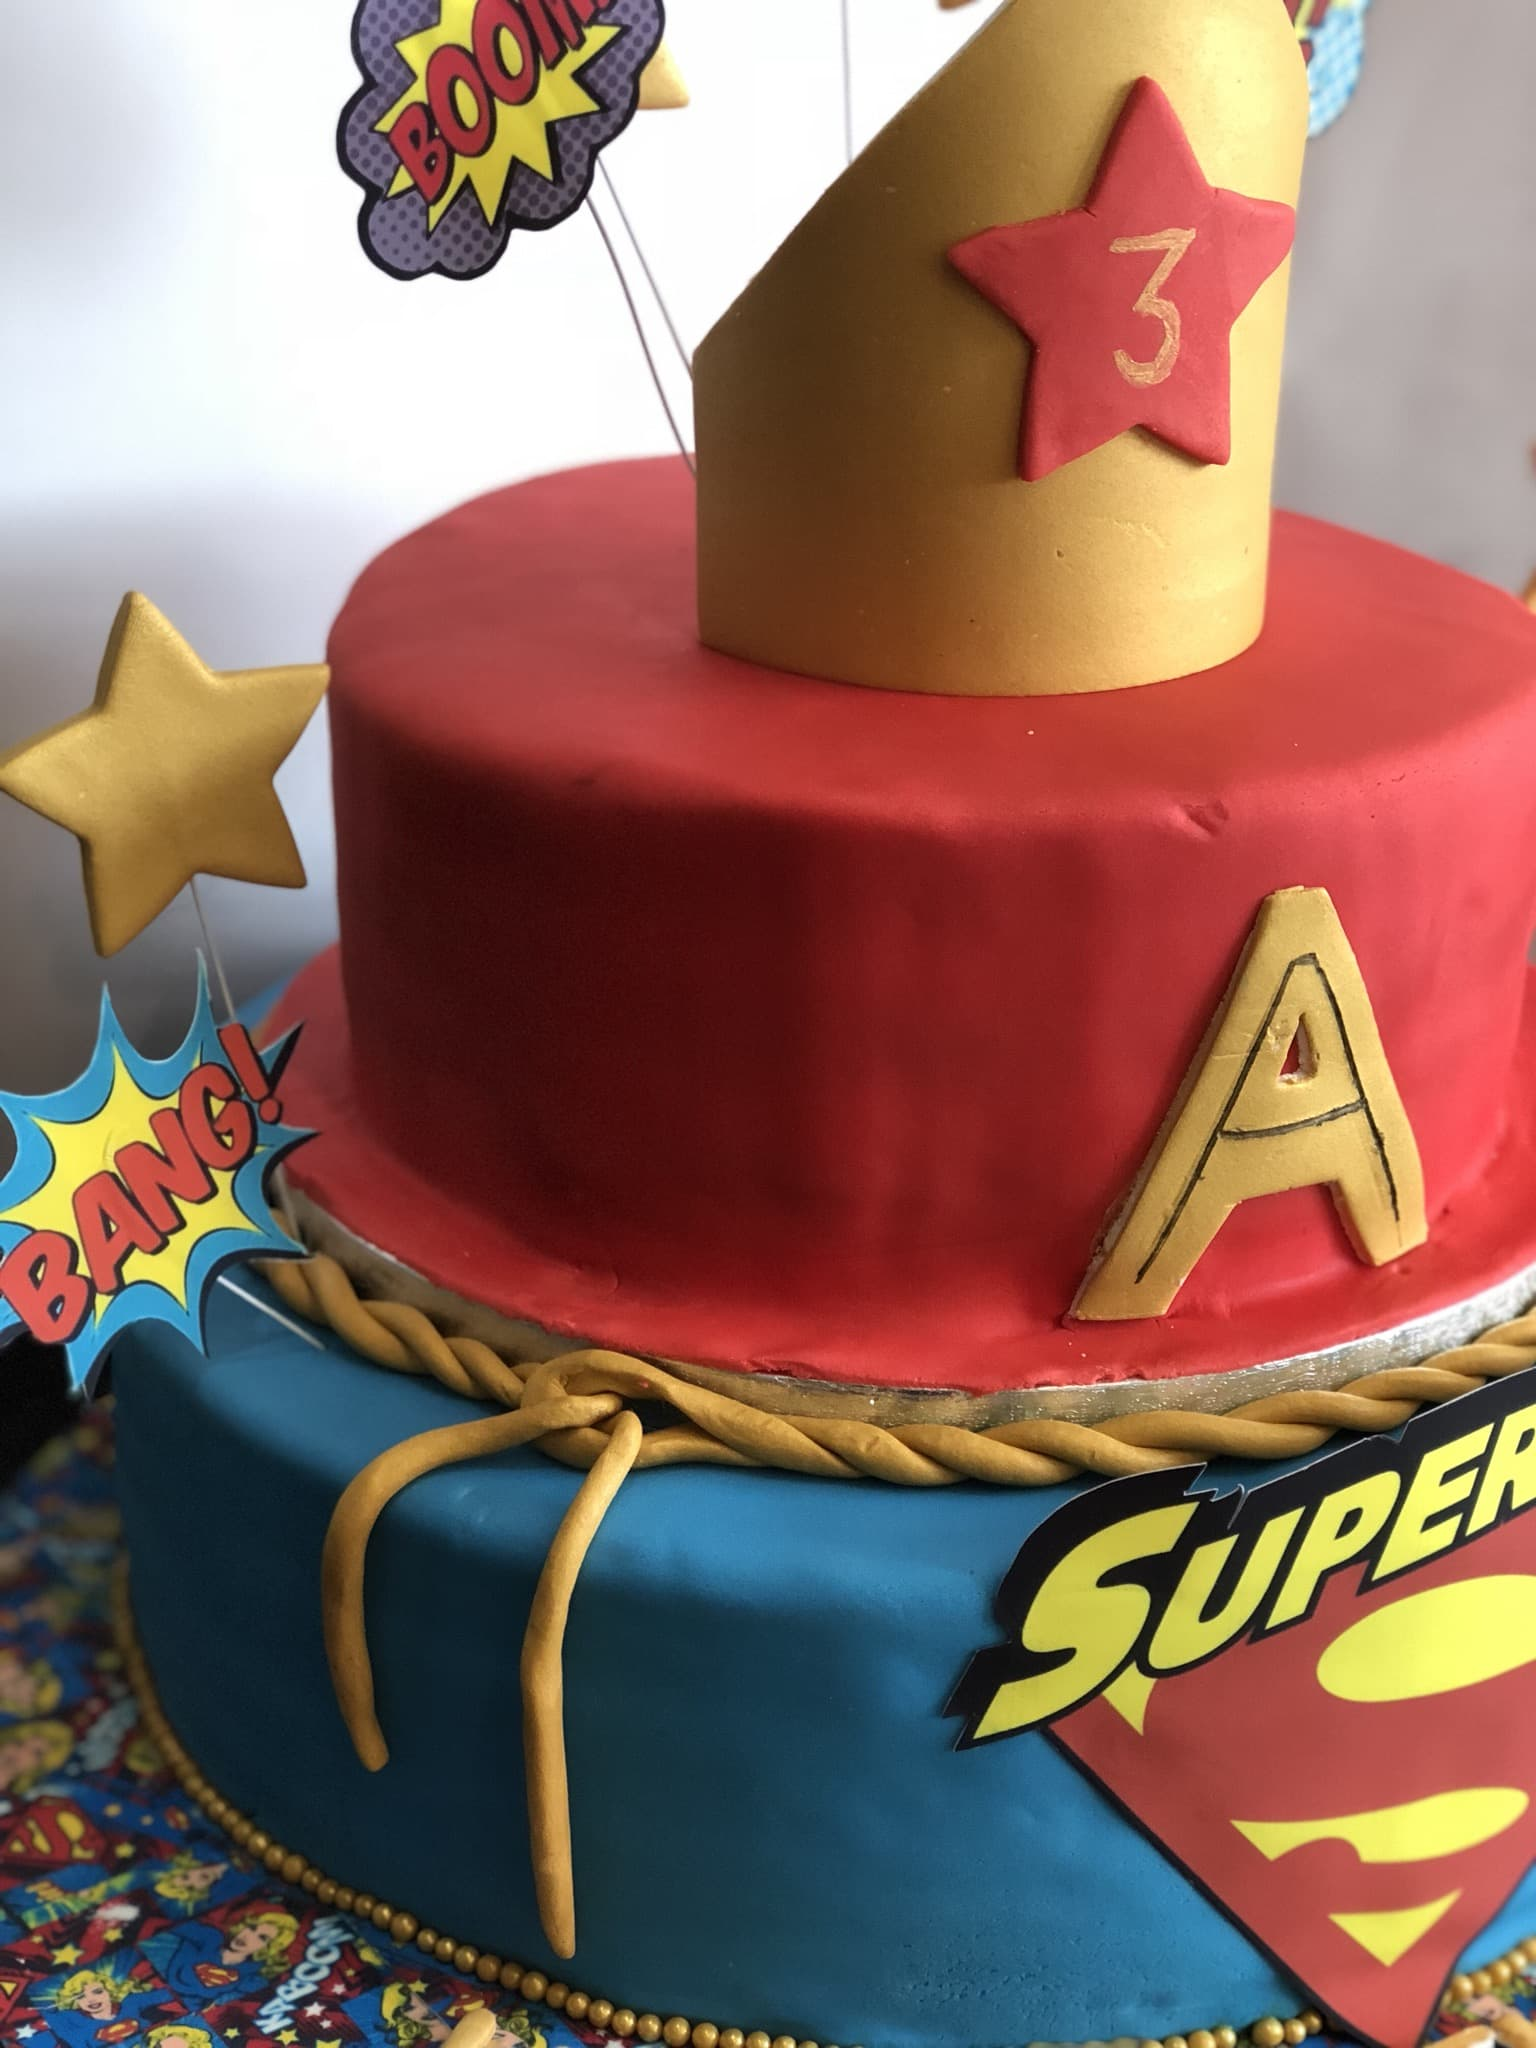 Swell Supergirl Cake By Tempting Sweet Treats Find The Cake Funny Birthday Cards Online Elaedamsfinfo